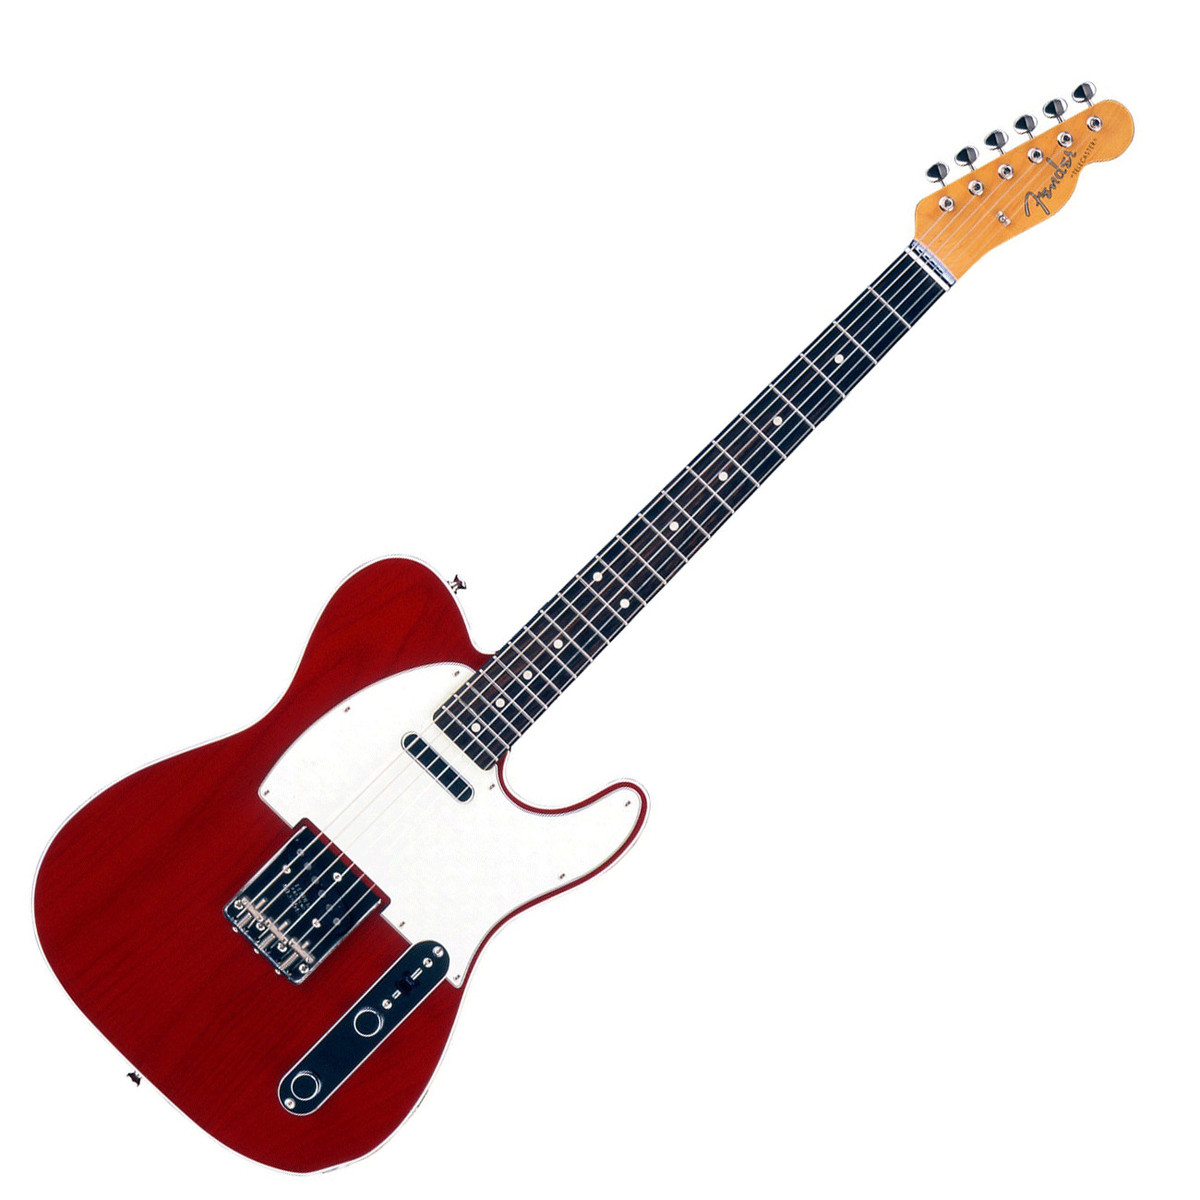 fender fsr 62 telecaster electric guitar cherry at gear4music. Black Bedroom Furniture Sets. Home Design Ideas